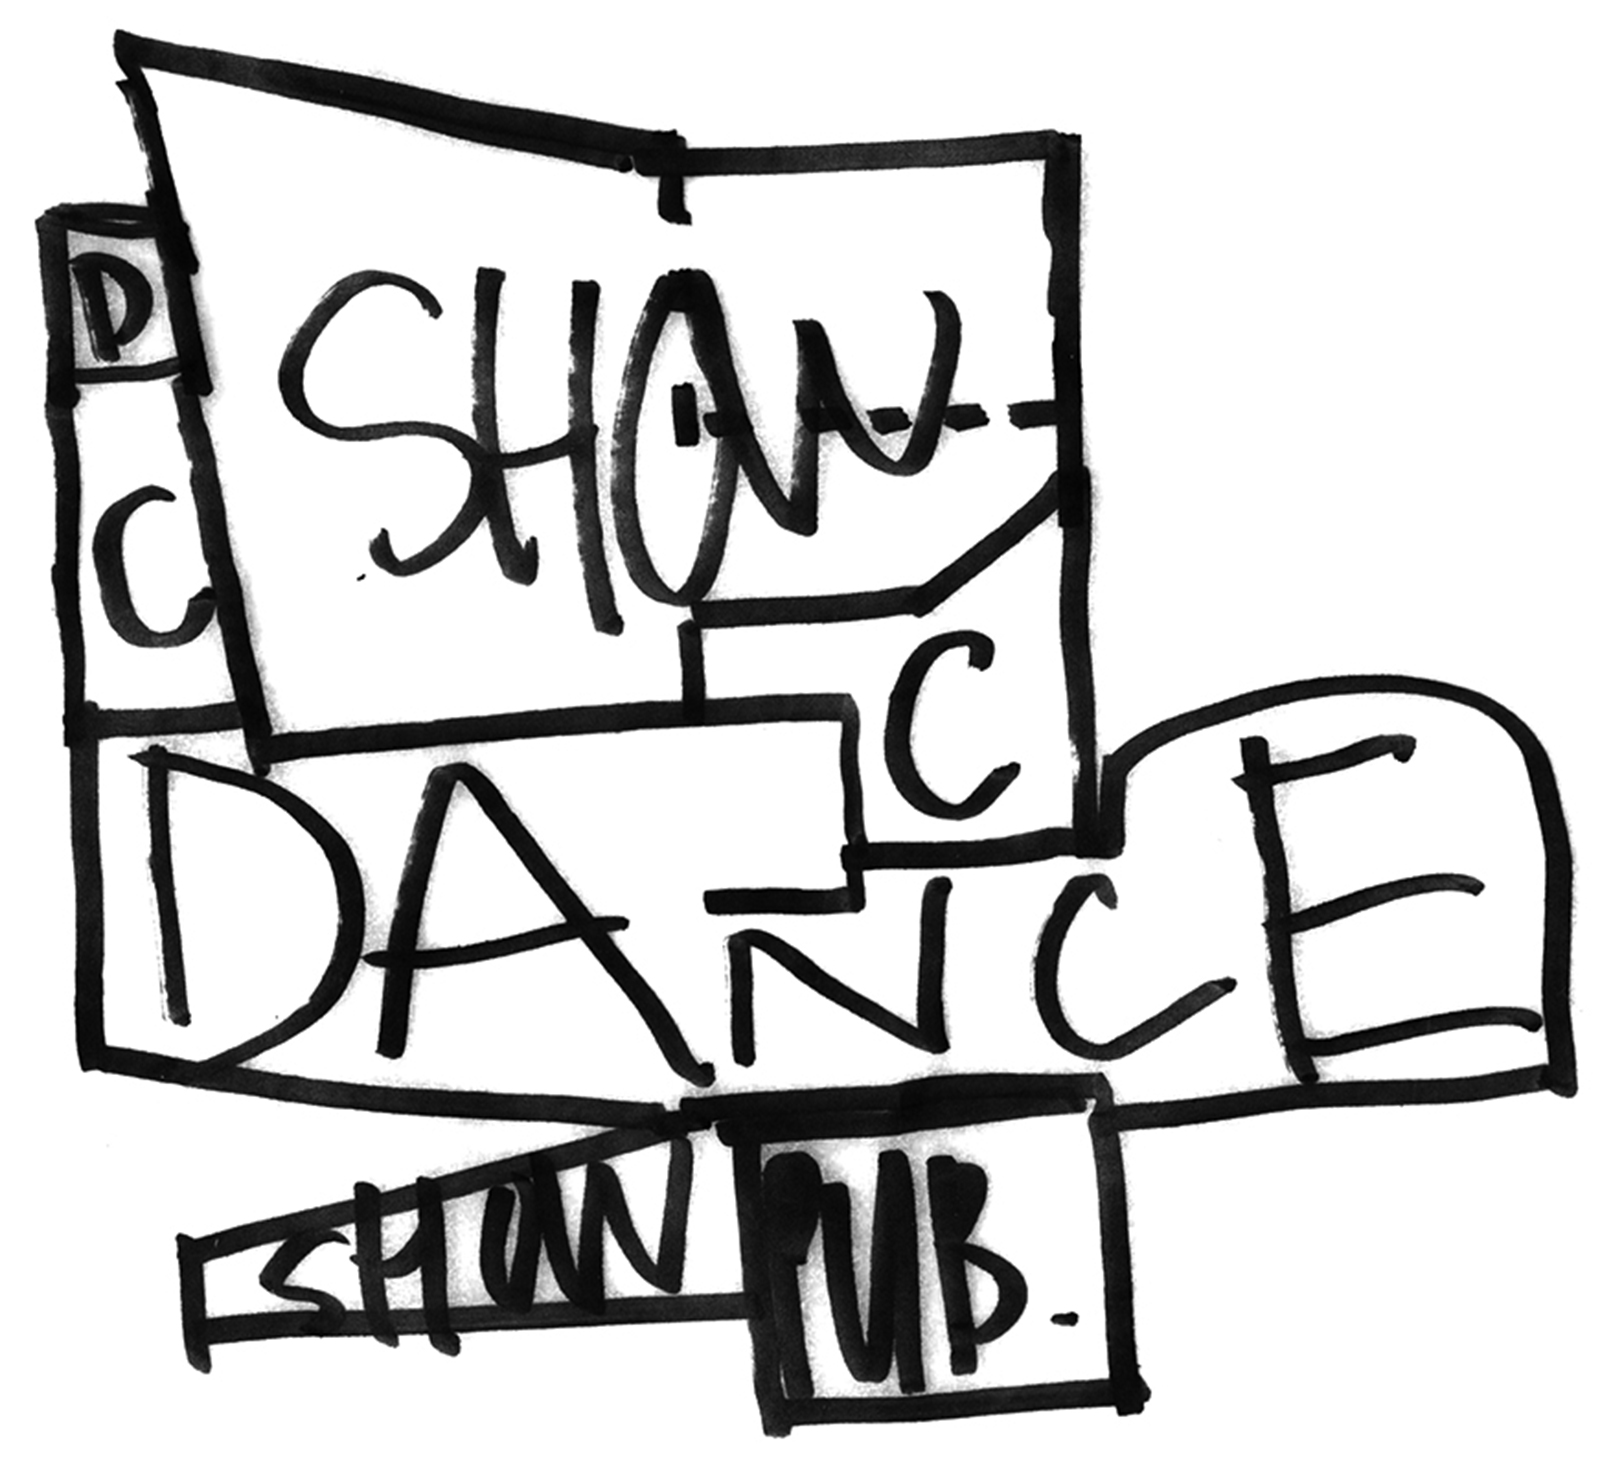 Initial concept sketch for distributing the various studio and theatre programs of the DM performance center